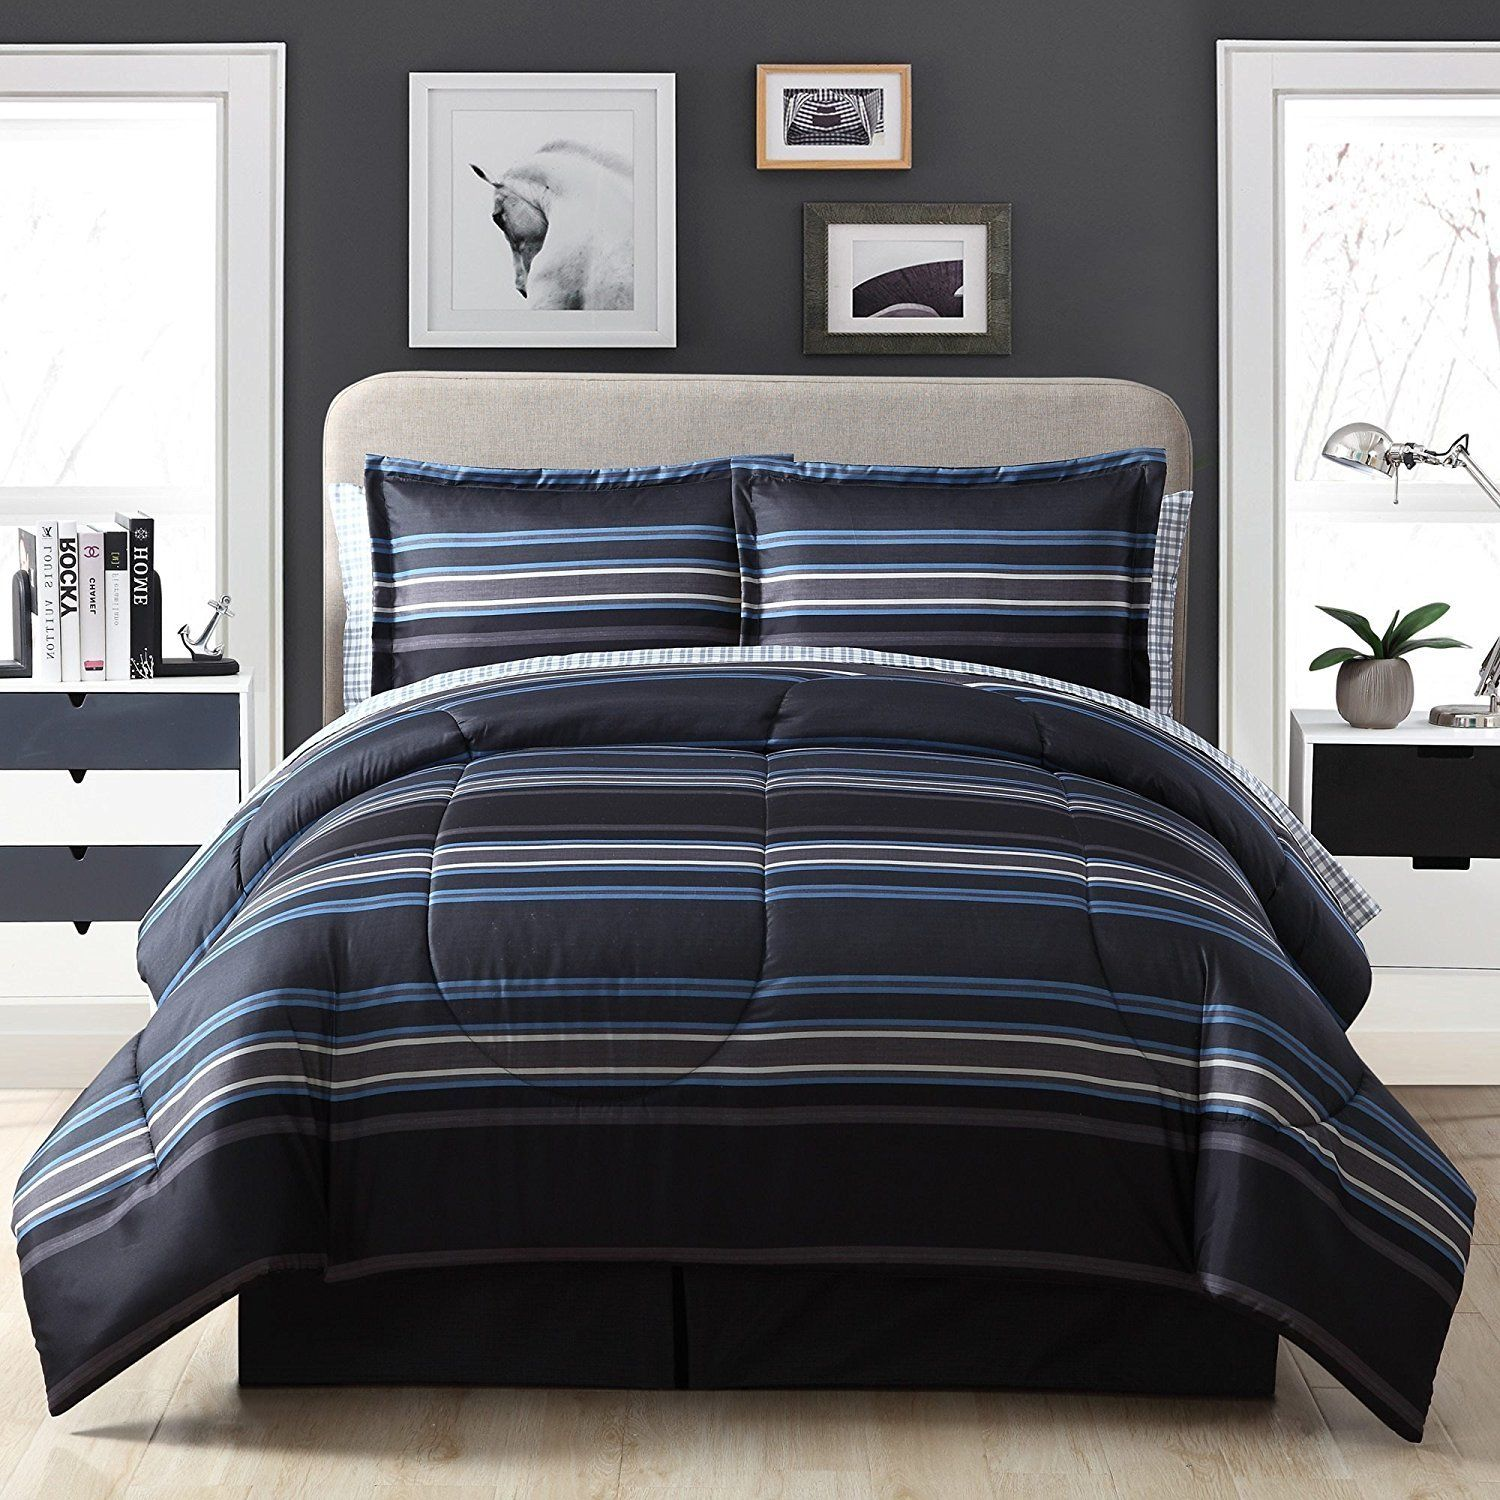 Grey Black Blue Rugby Stripes Comforter Queen Set Horizontal Striped Bedding  Sports Themed Colors Nautical Cabana